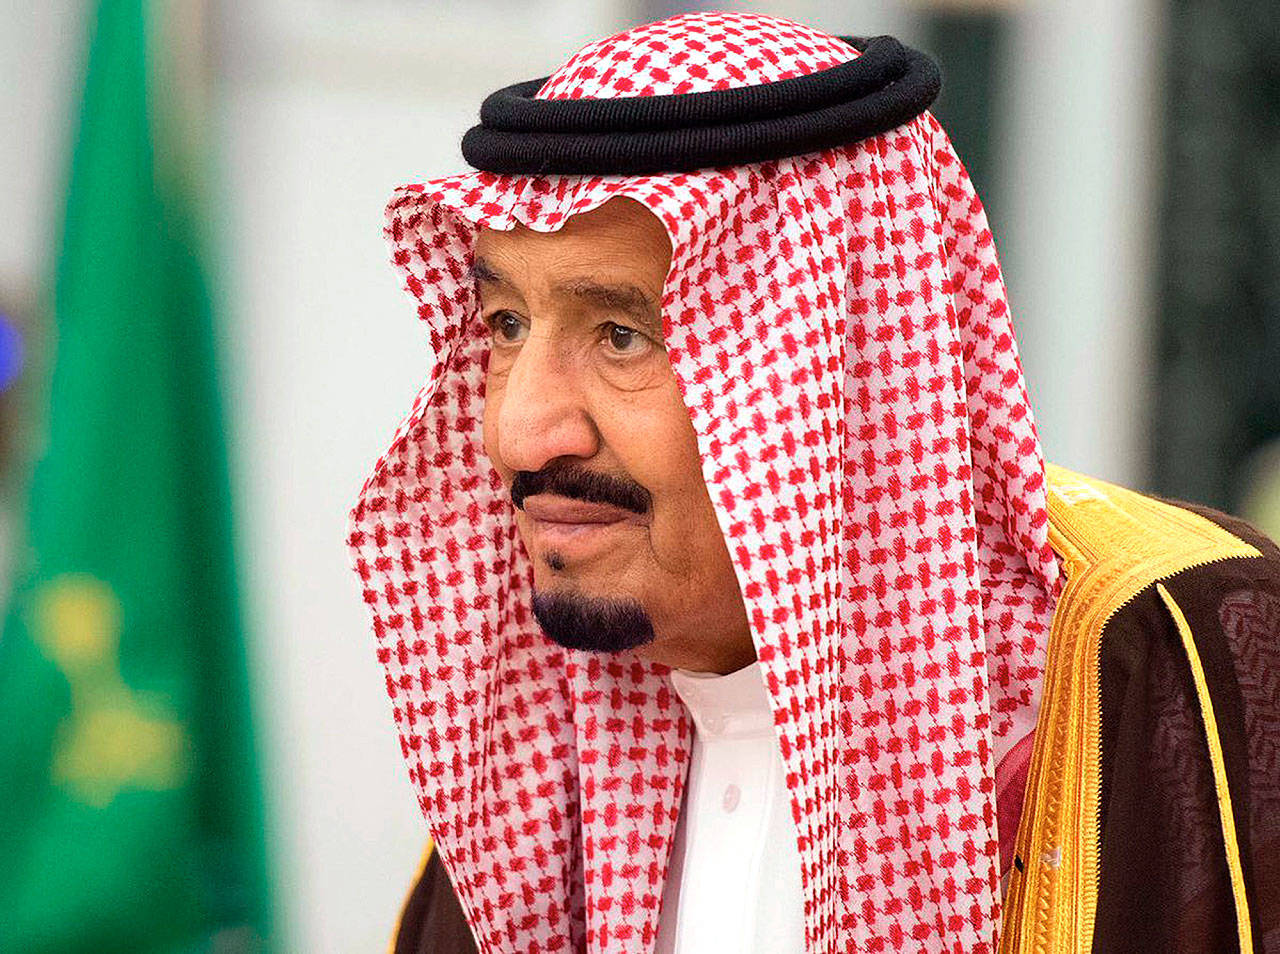 King Salman attends a swearing-in ceremony in Riyadh, Saudi Arabia, on Monday. The king has sworn in new officials to take over from a powerful prince and former minister believed to be detained in a large-scale sweep that has shocked the country and upended longstanding traditions within the ruling family. (Saudi Press Agency, via AP)